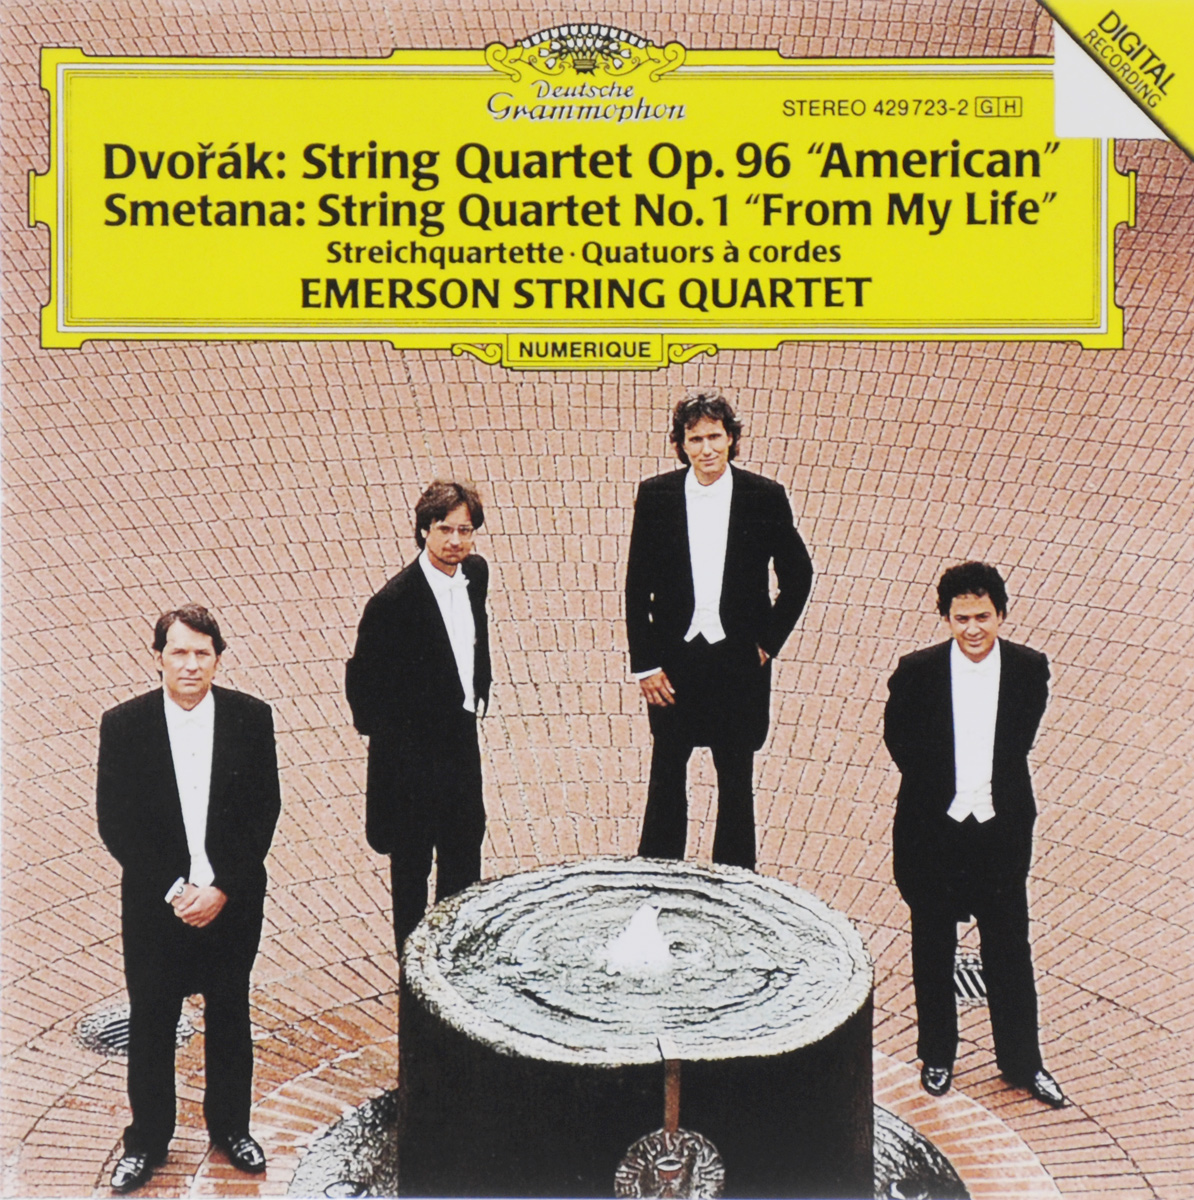 Emerson String Quartet Emerson String Quartet. String Quartet Op. 96 American / String Quartet No. 1 From My Life paulmann 99811